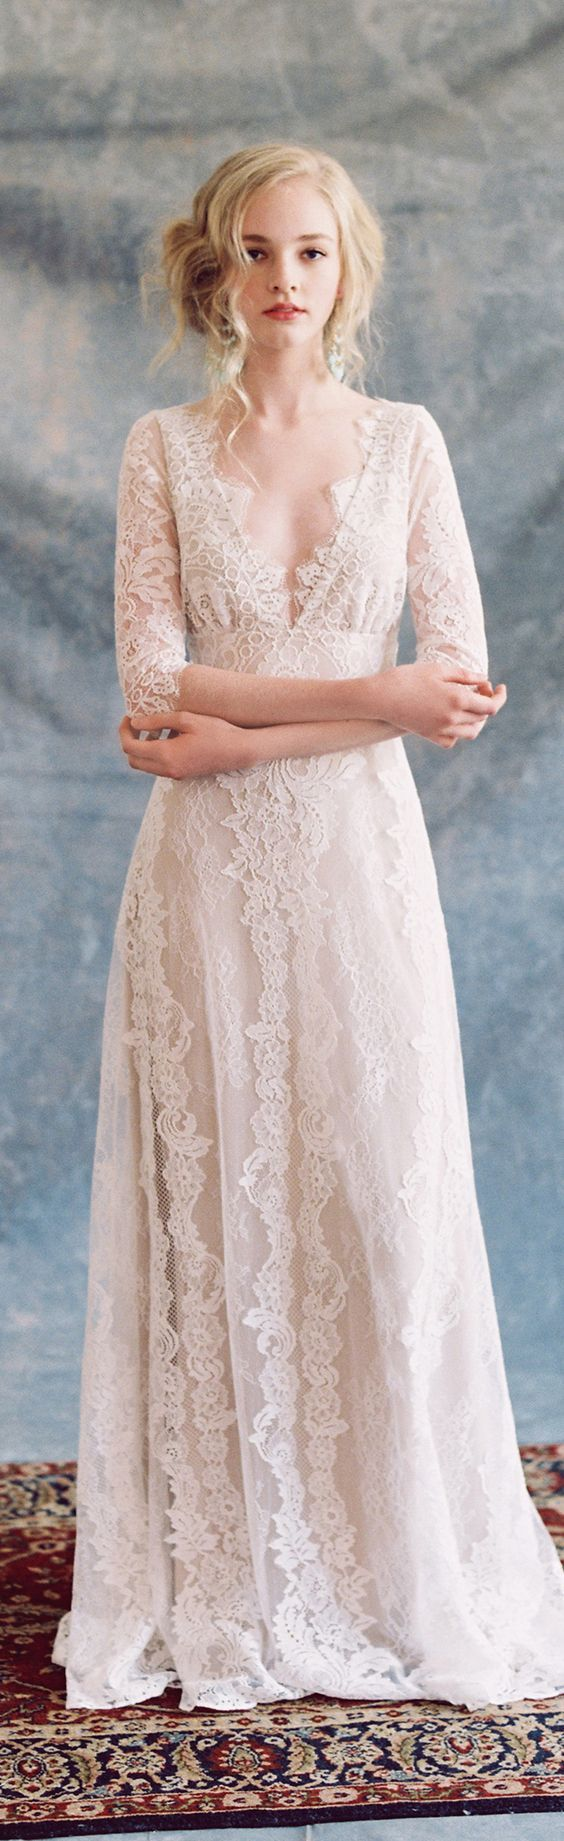 Patchouli lace wedding dress Romantique by Claire Pettibone, photo: Laura Gordon http://romantique.clairepettibone.com/collections/bohemian-rhapsody/products/patchouli